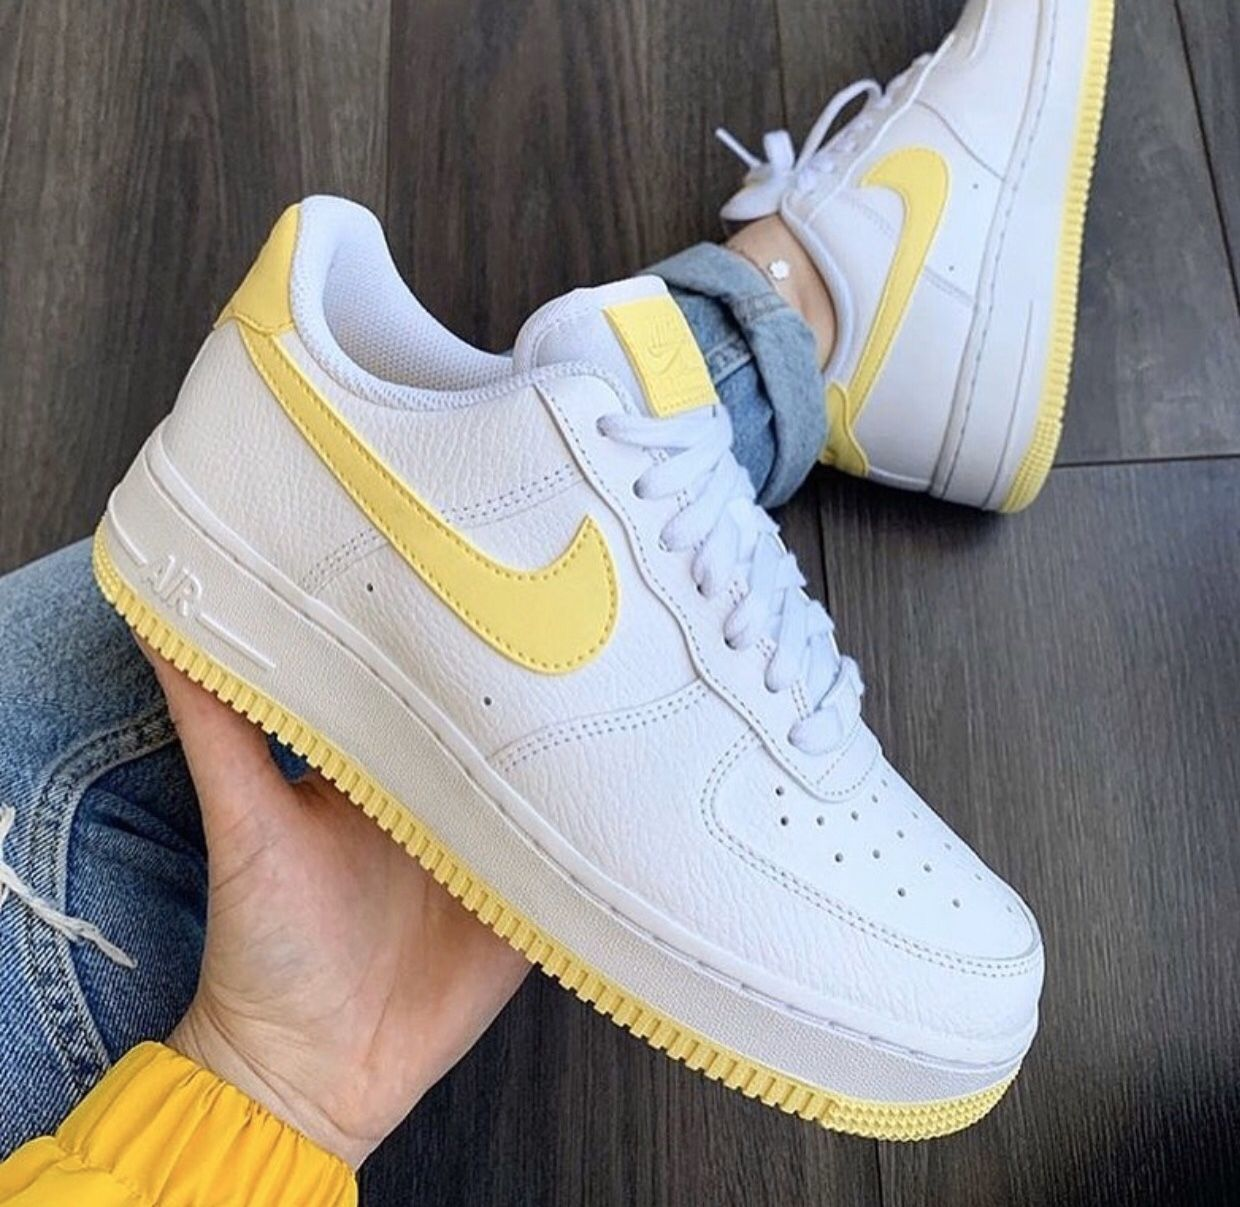 Pin by Hailey Simone 🥀 on shoess Nike shoes air force